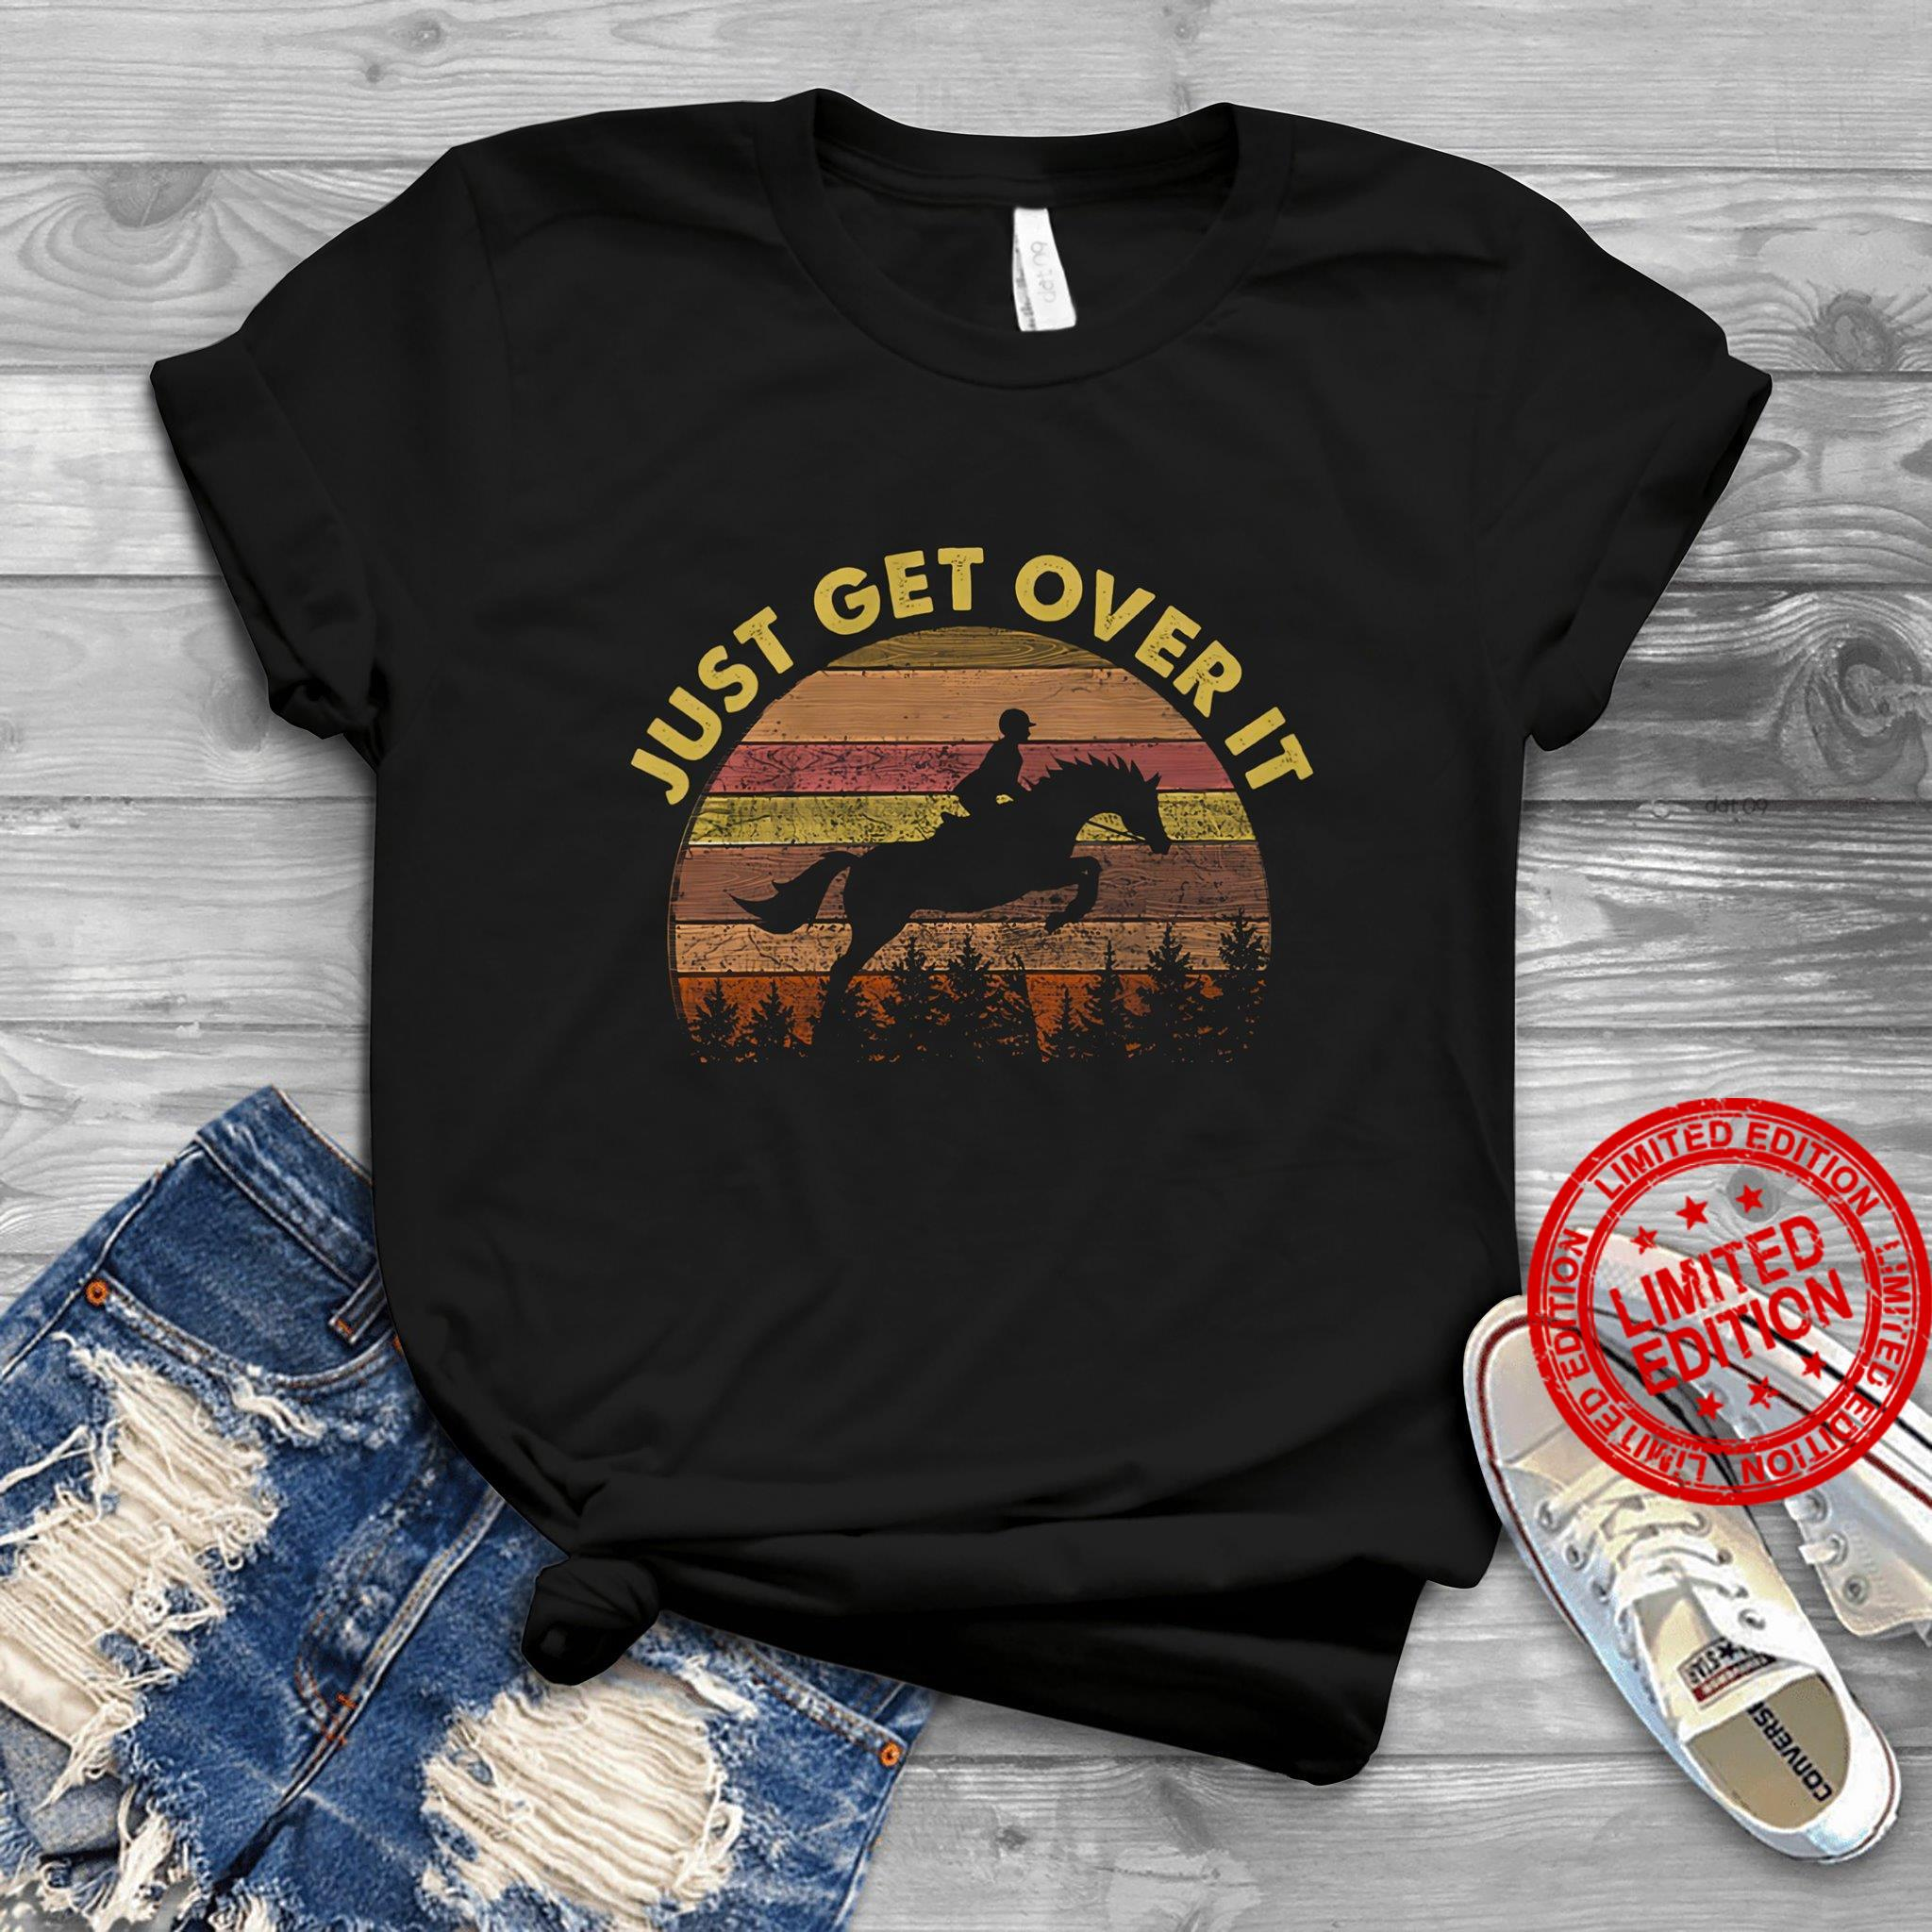 Just Get Over It Shirt